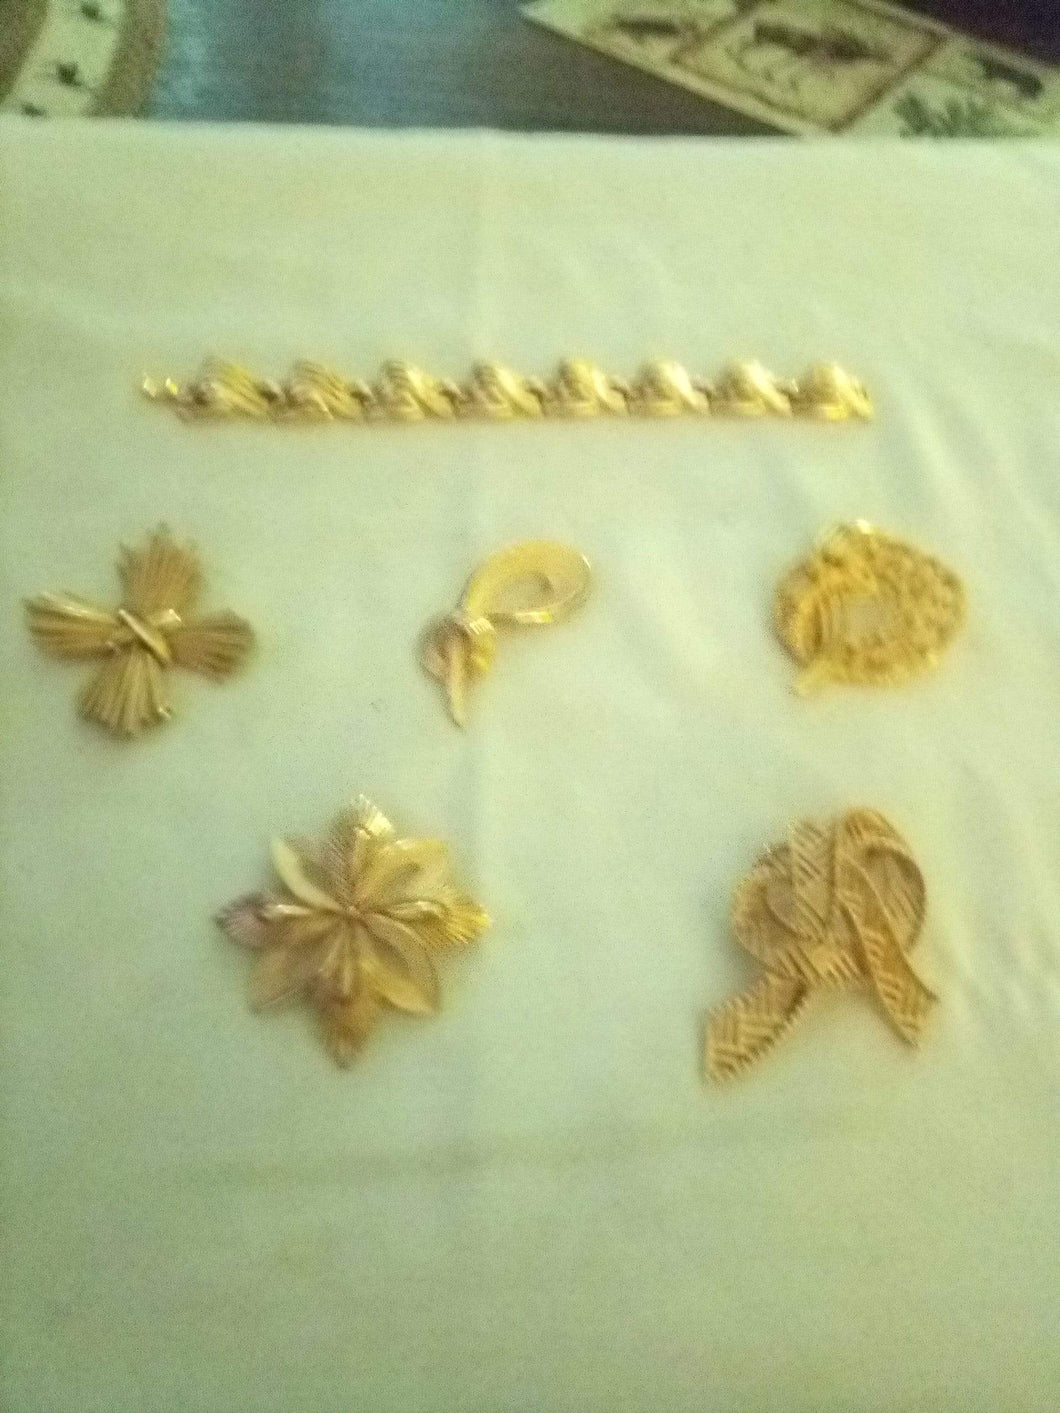 Trifari marked beautiful vintage lot - B&P'sringsnthings